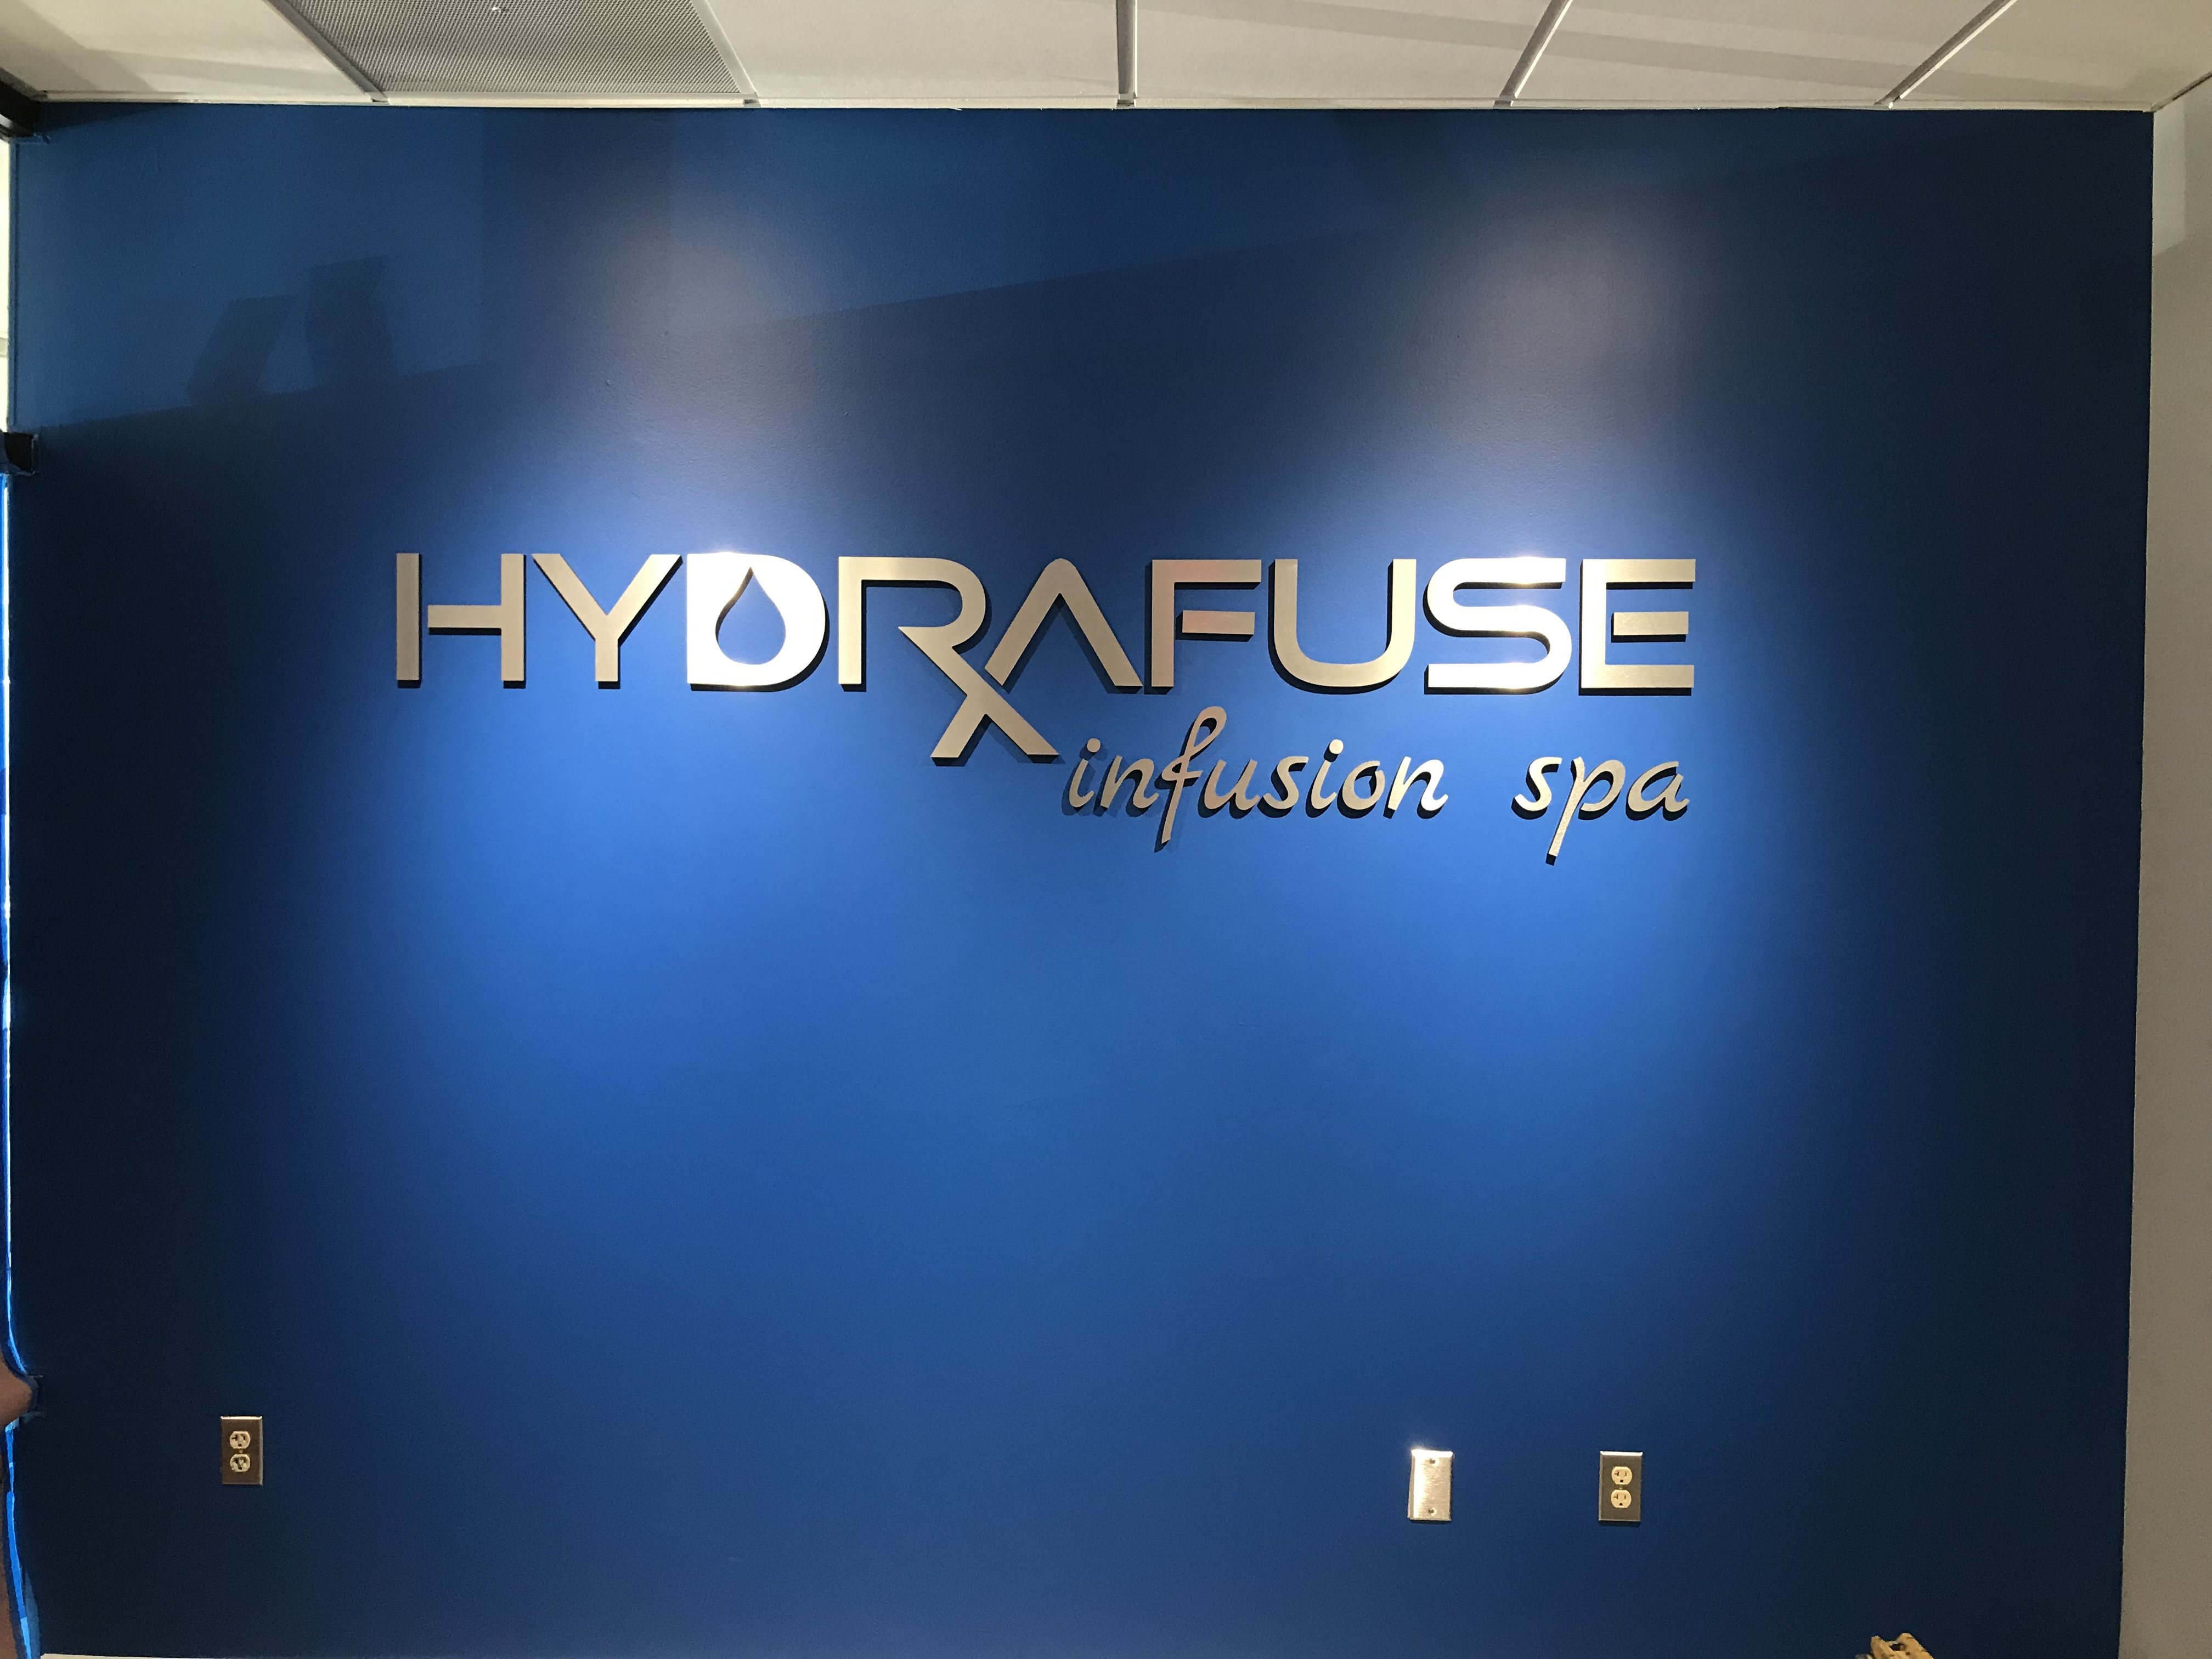 Metal-plated 3D Letters with text that reads: HYDRAFUSE infusion spa